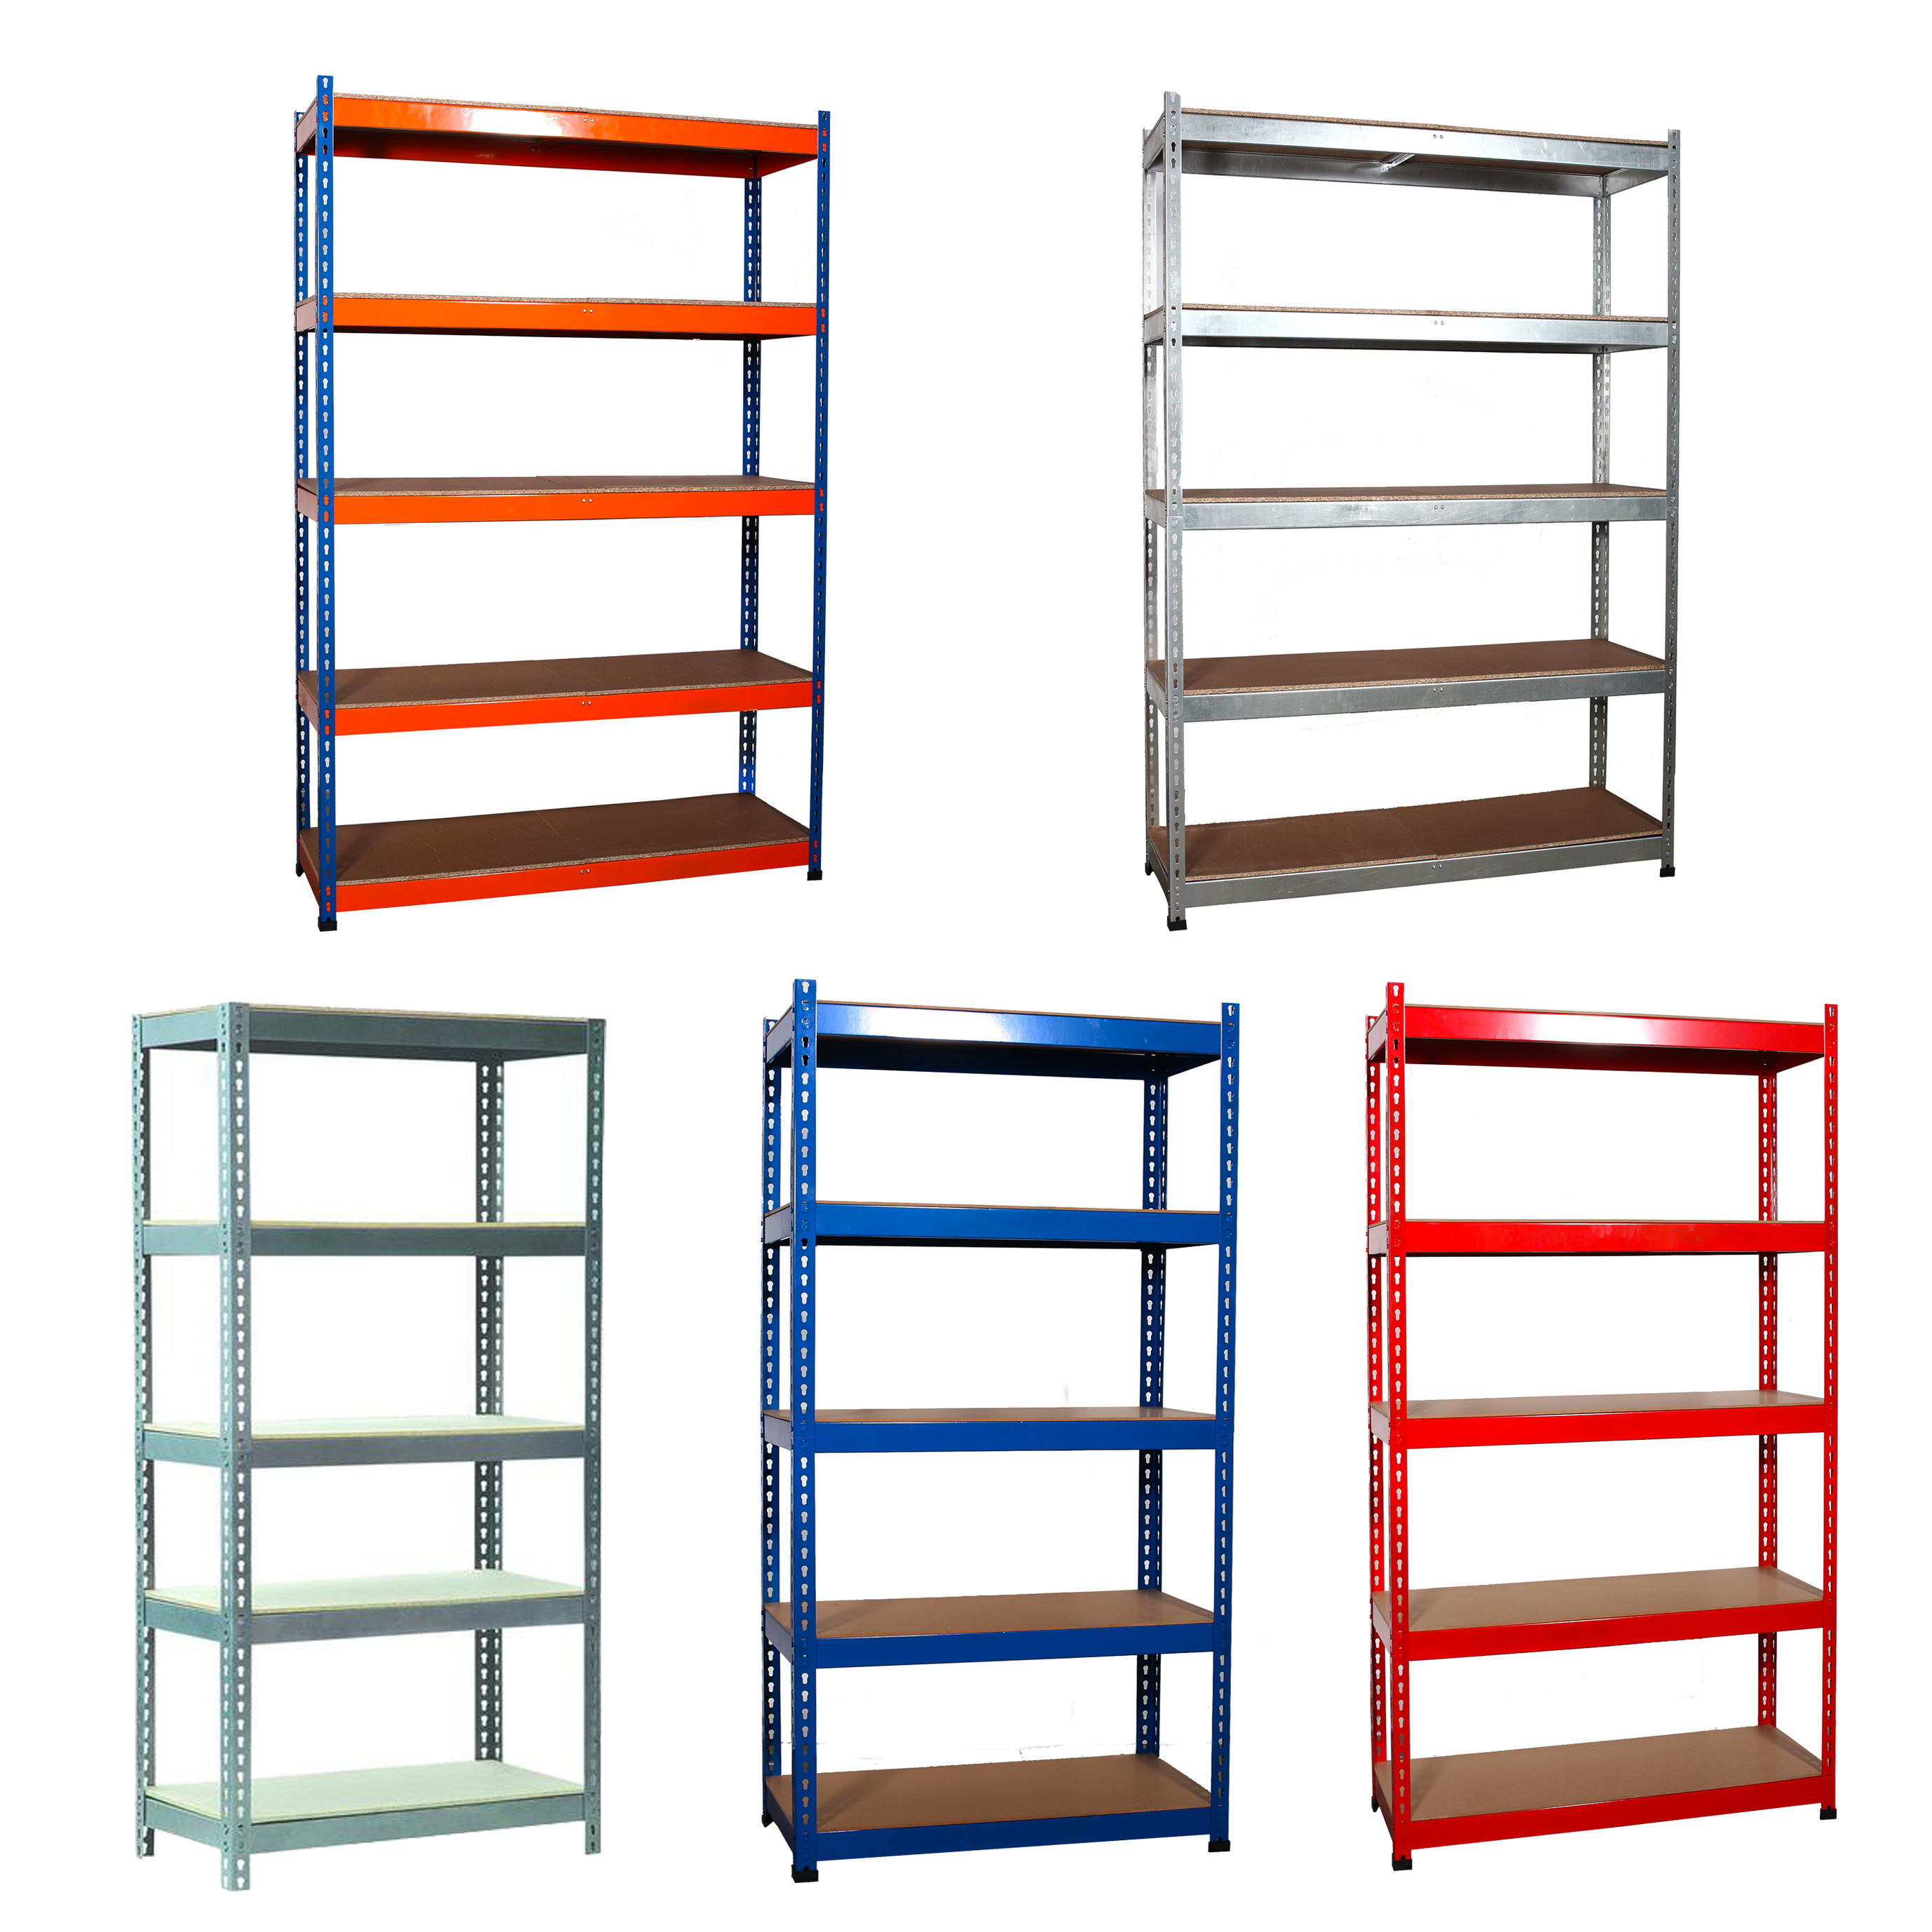 Plastic garage storage shelves best storage design 2017 for Attaching shelves to plastic shed